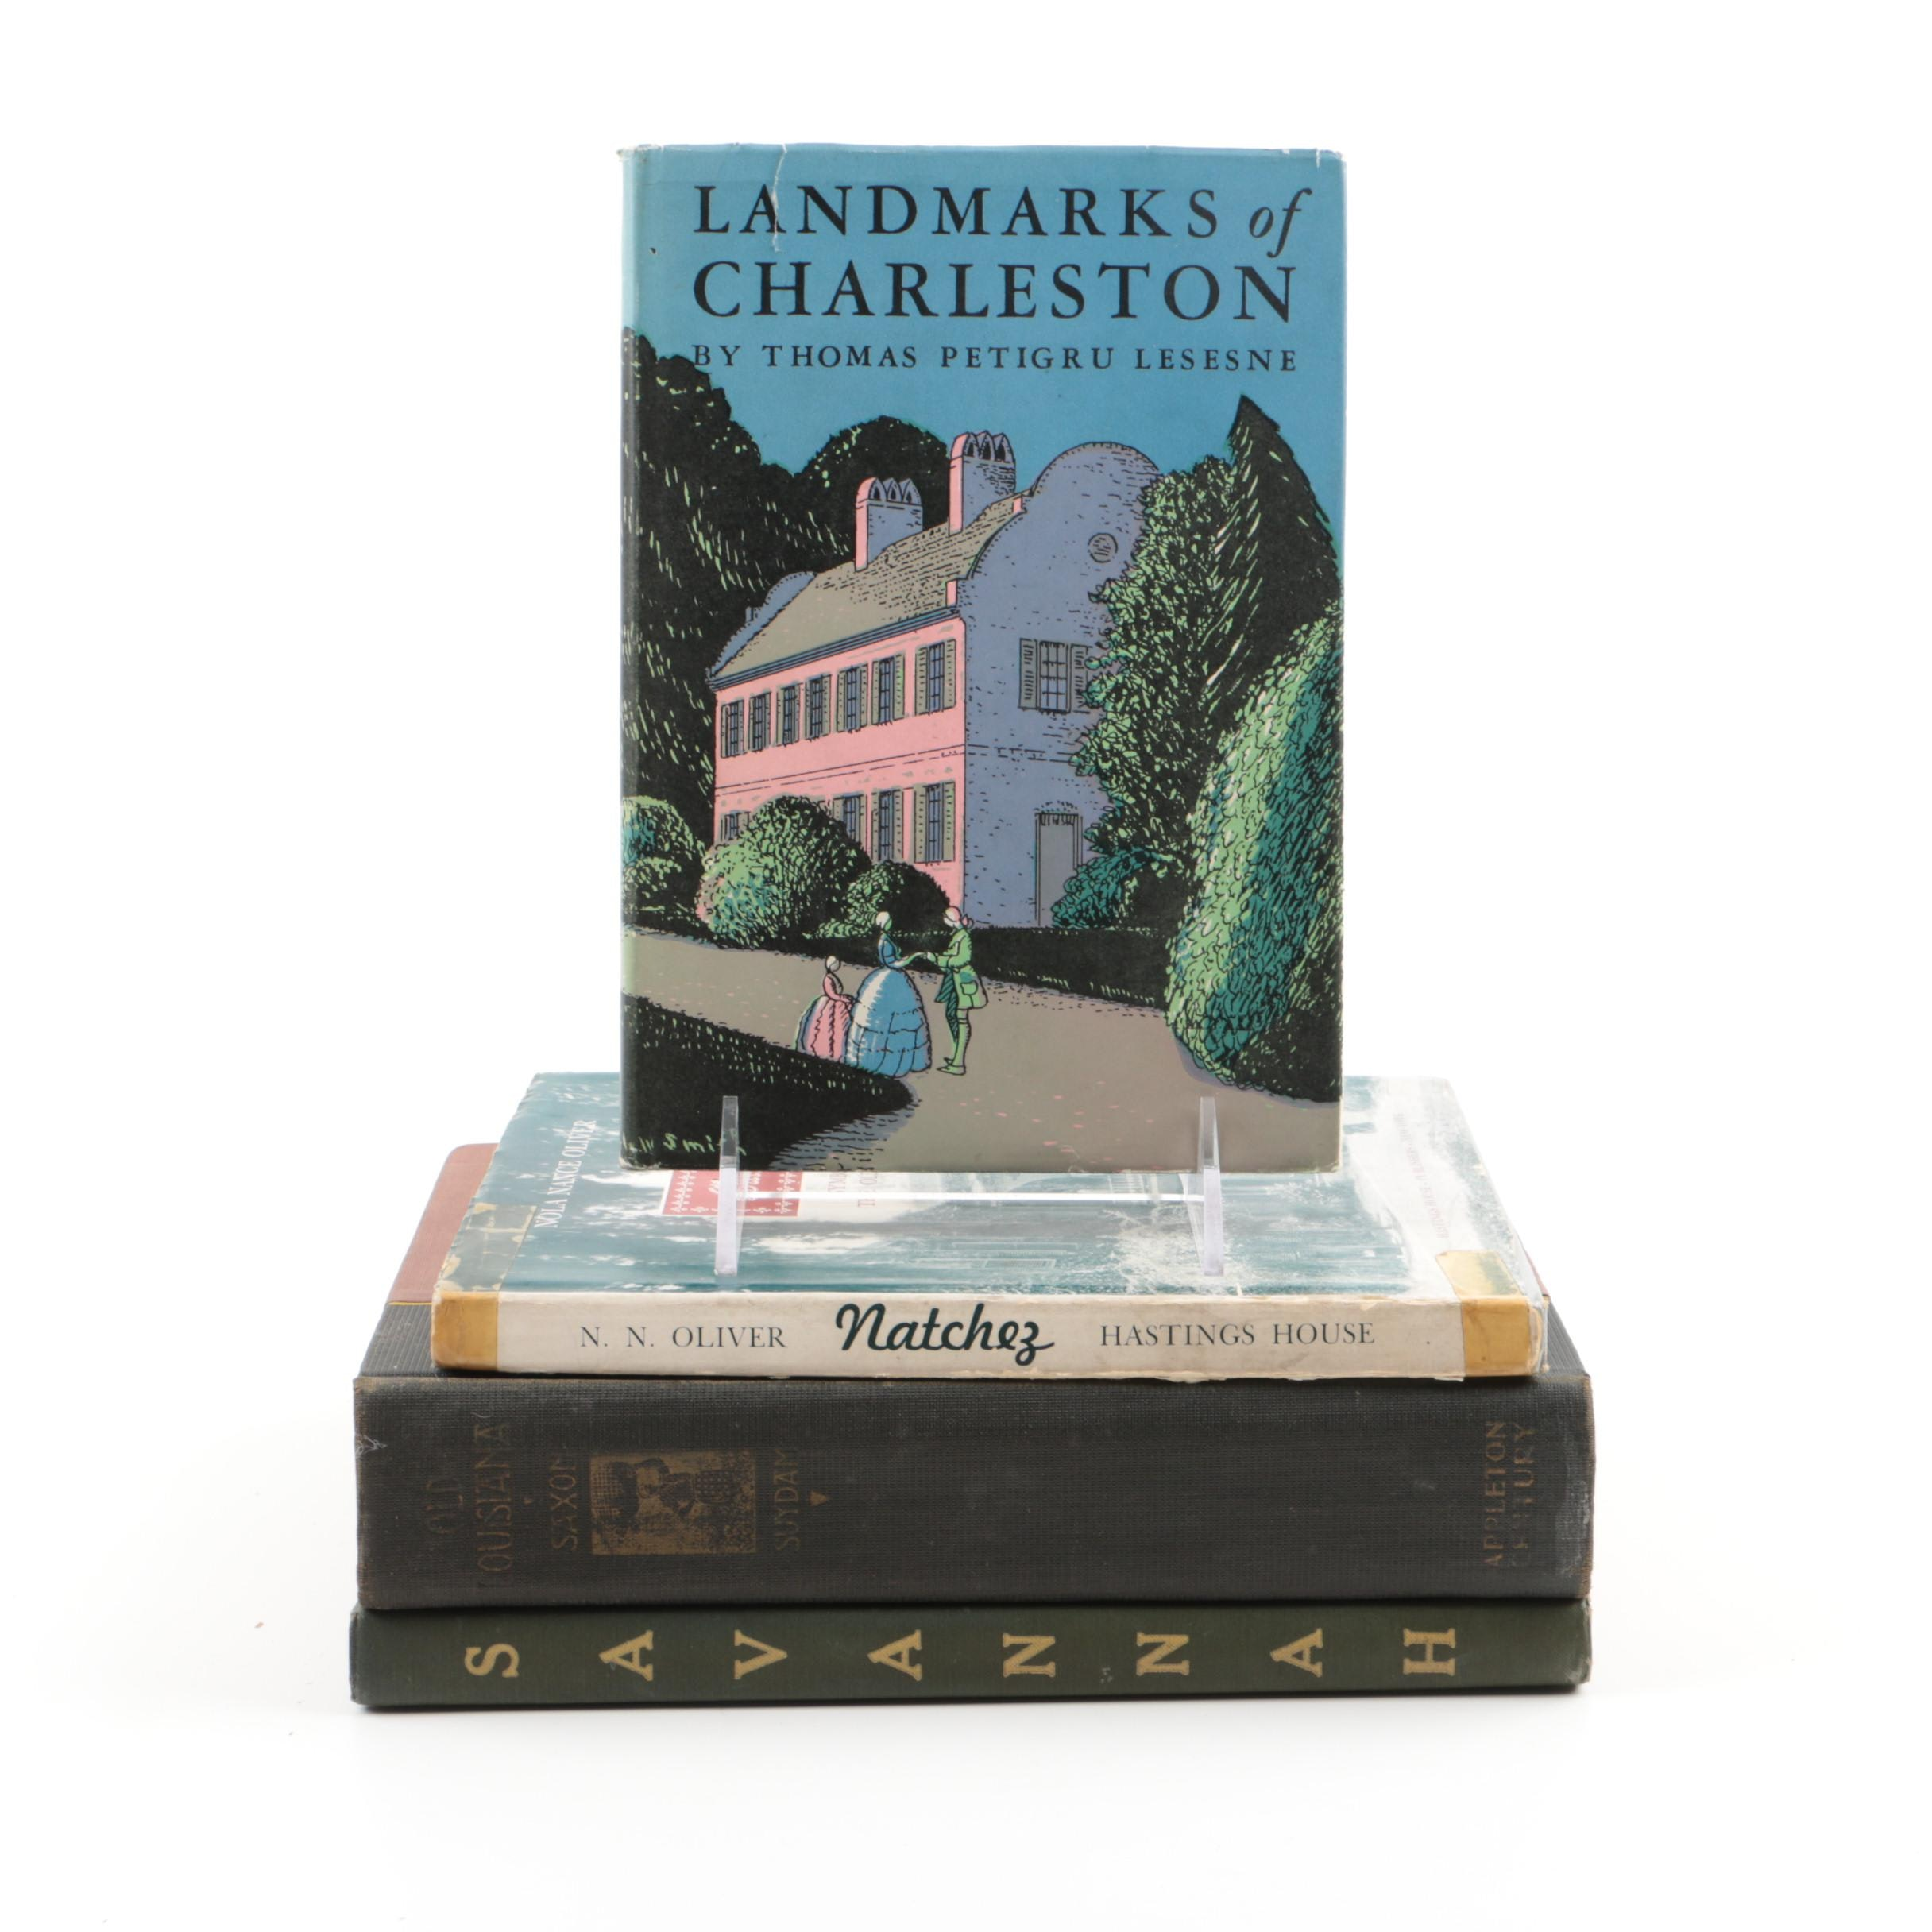 Books on Old Southern Cities and Historical Landmarks